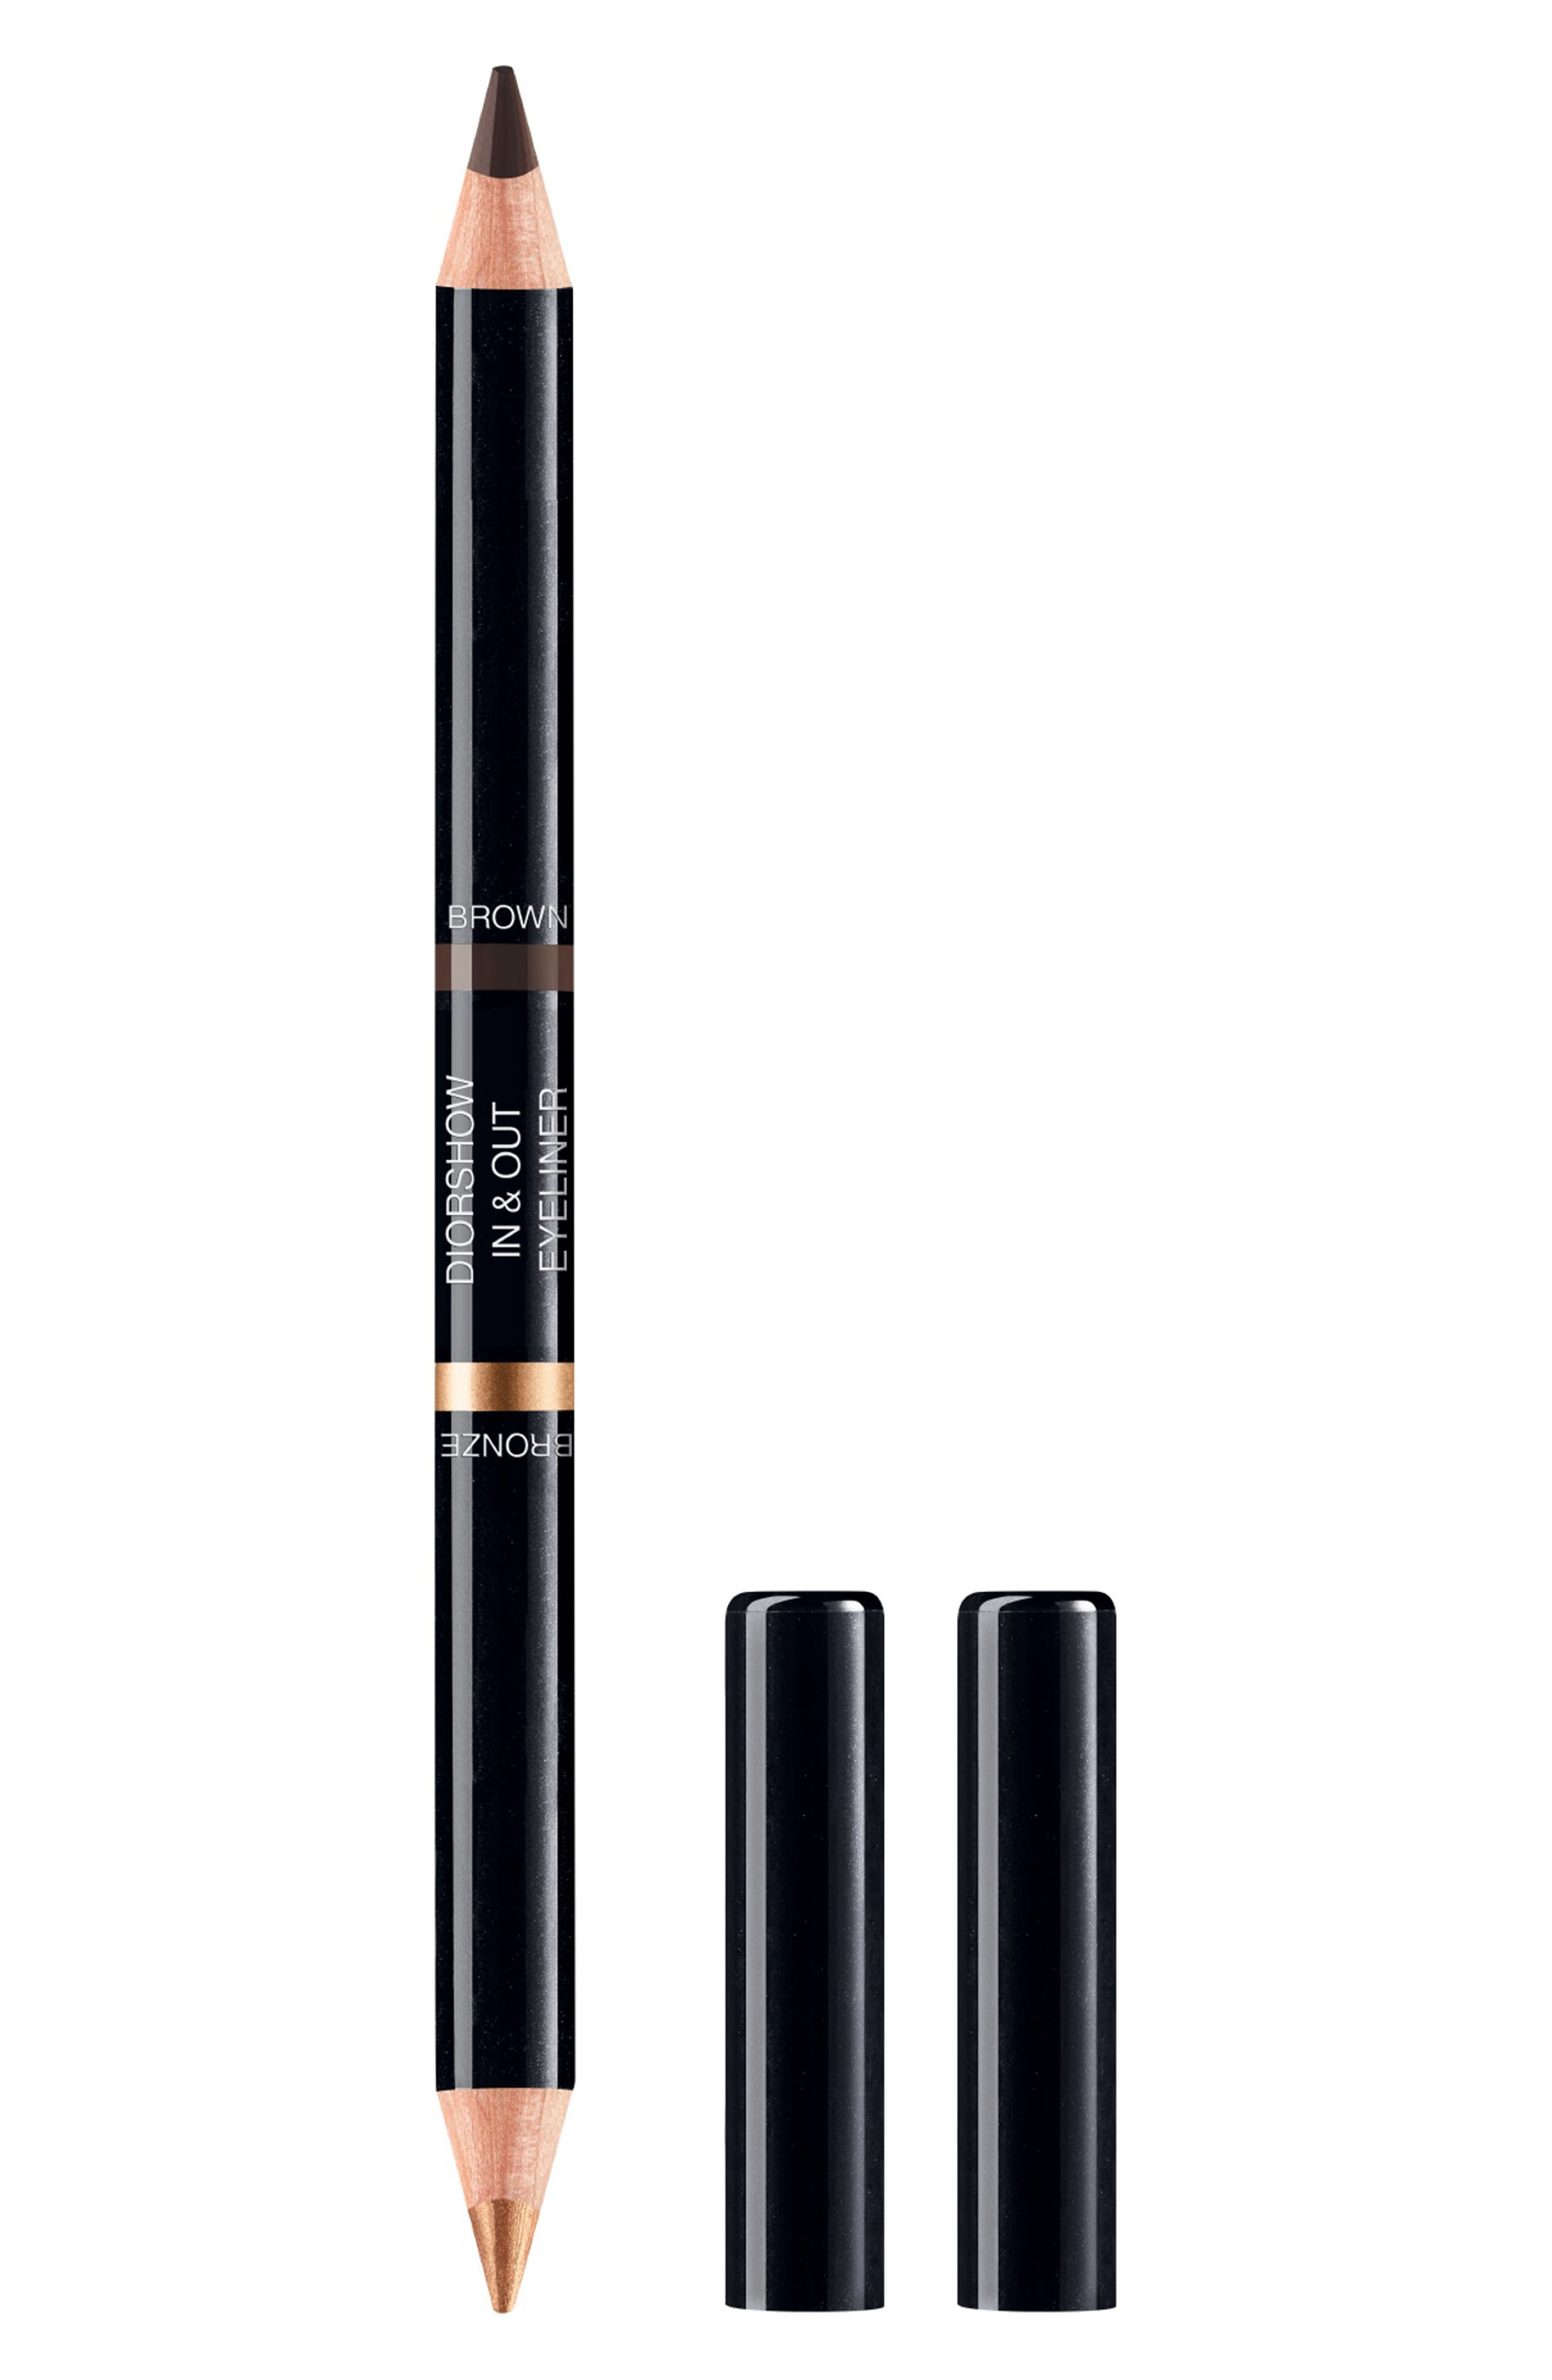 Dior Diorshow In & Out Waterproof Eyeliner - 002 Brown/gold